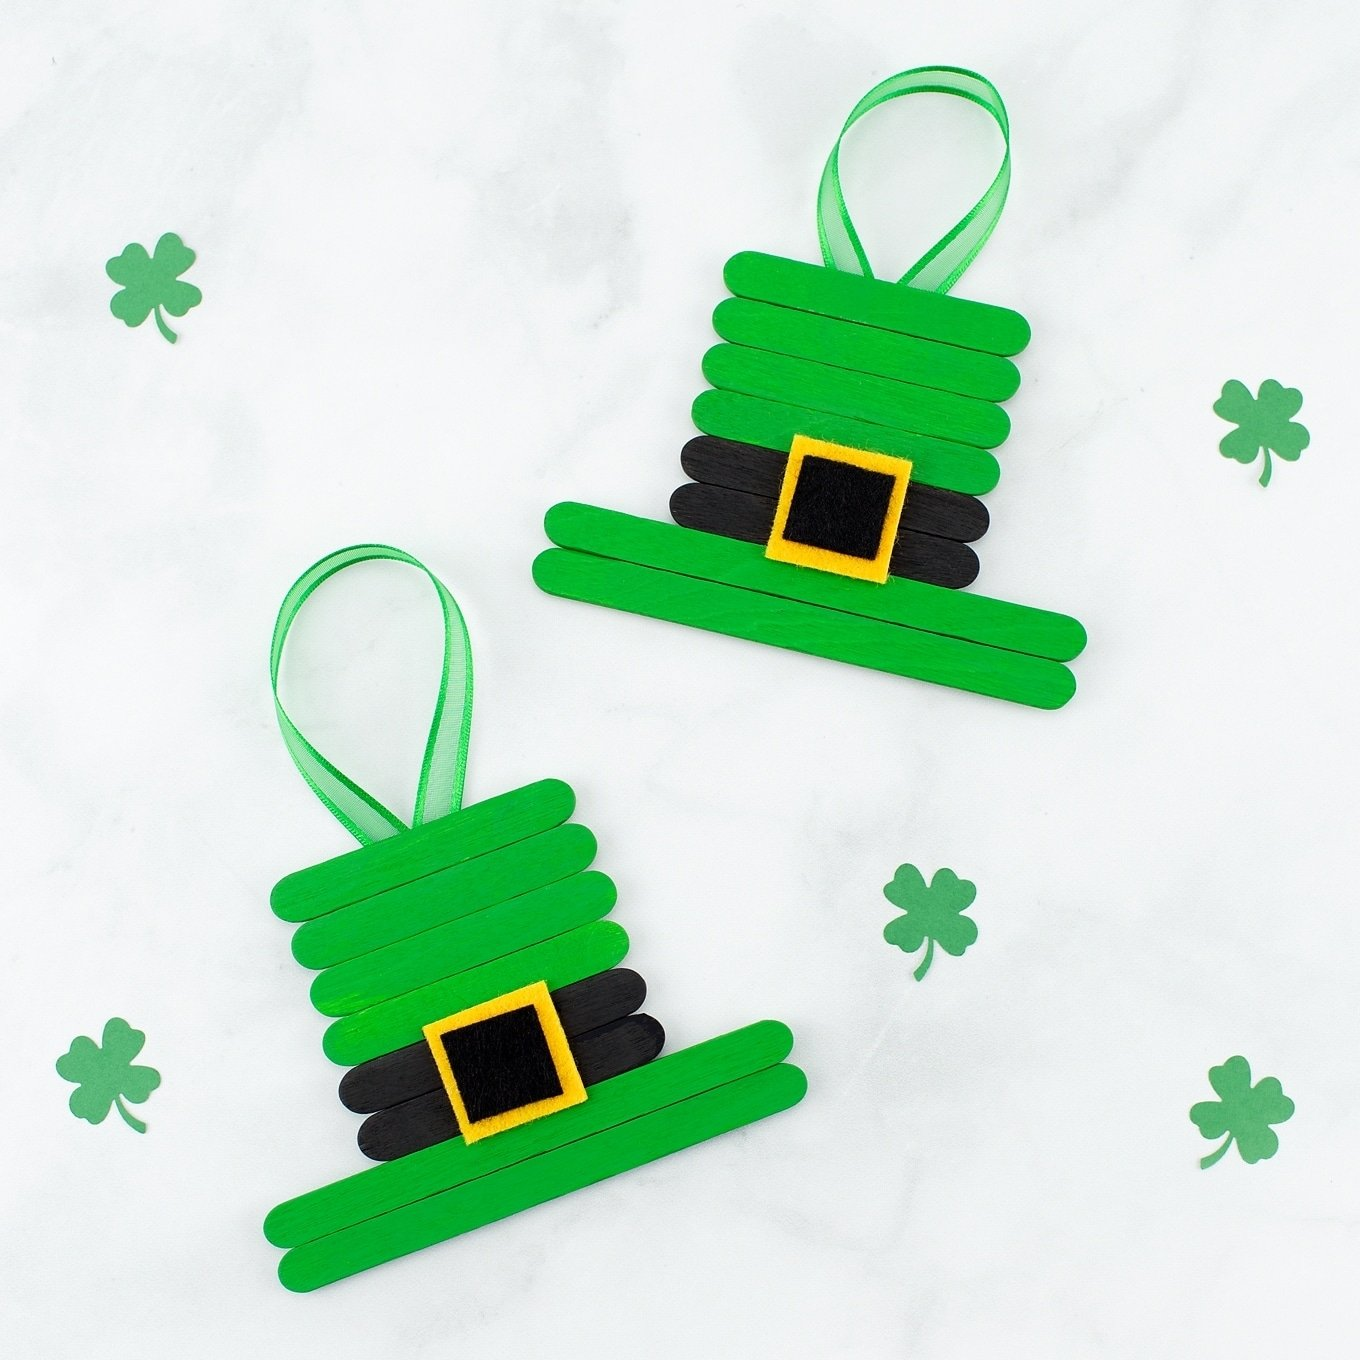 10 Cute St Patrick Day Craft Ideas 7 fun and easy st patricks day craft ideas lucky me 2021